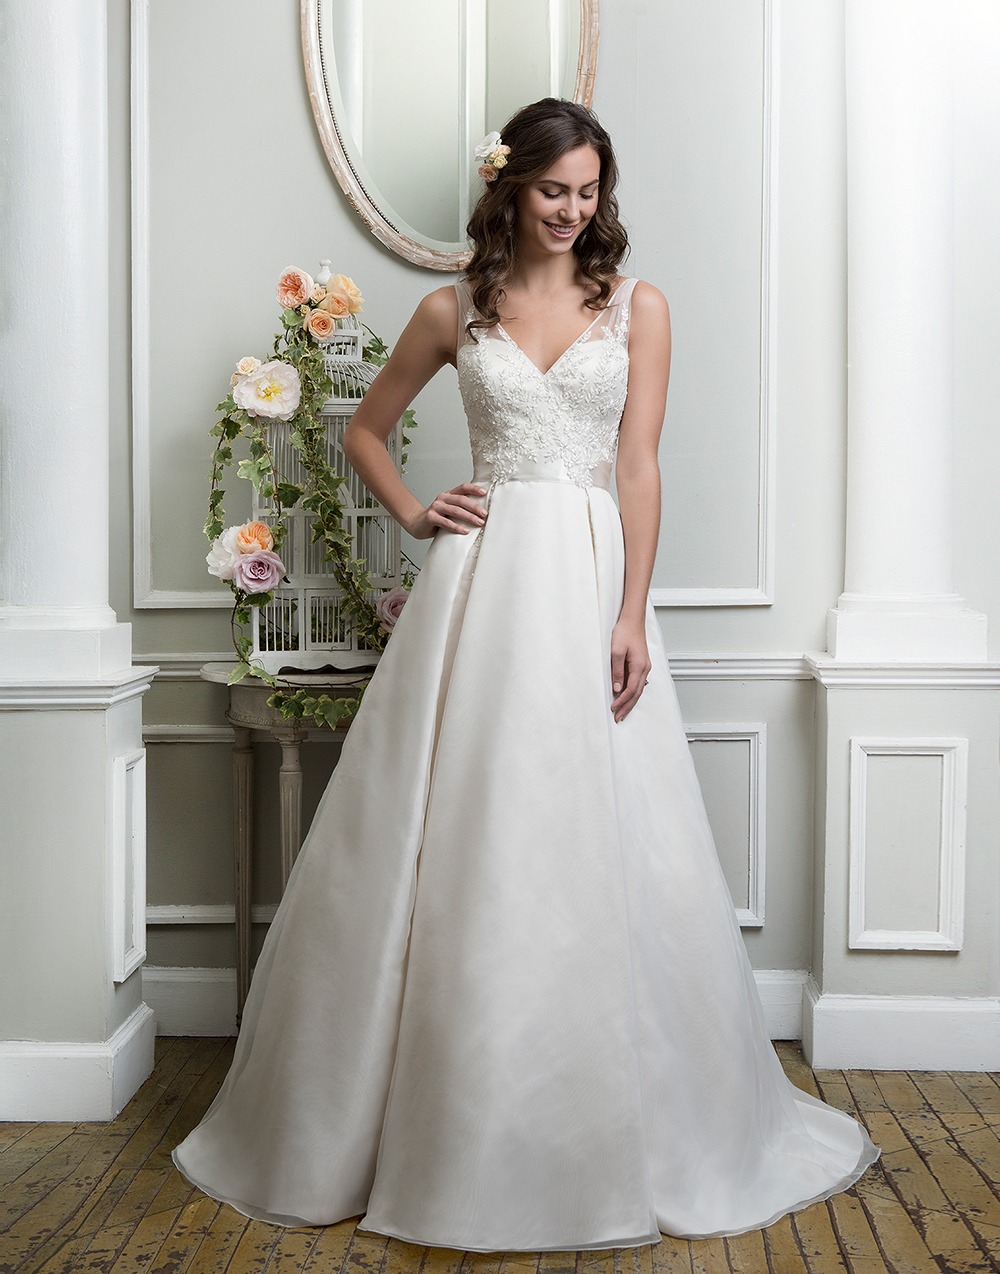 Lillian West Perfection Bridal Amp Menswear Maidstone